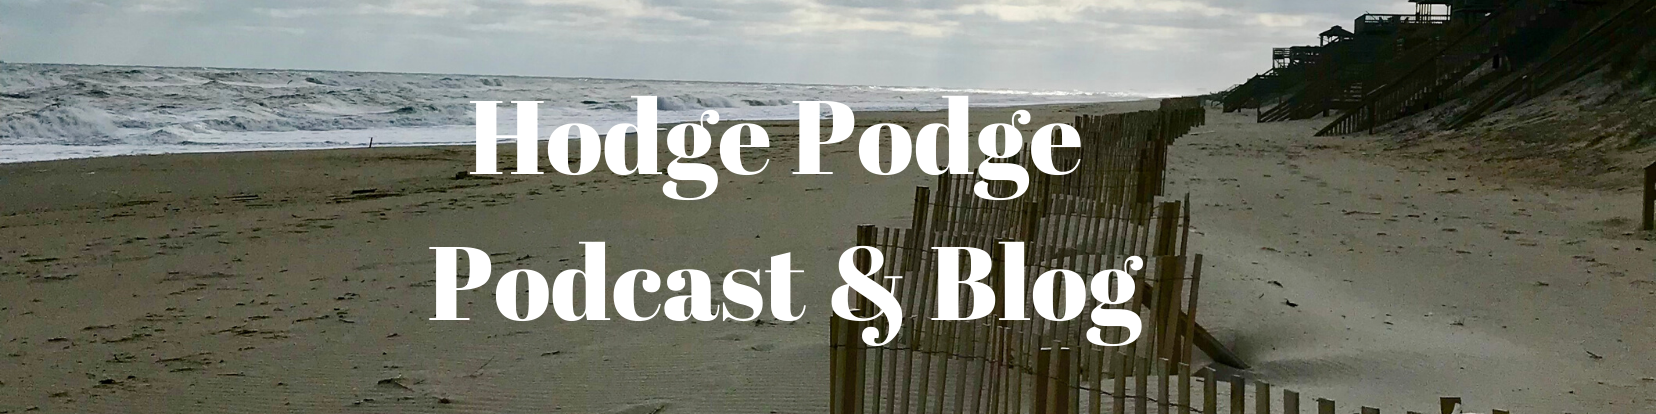 Hodge Podge Podcast and Blog